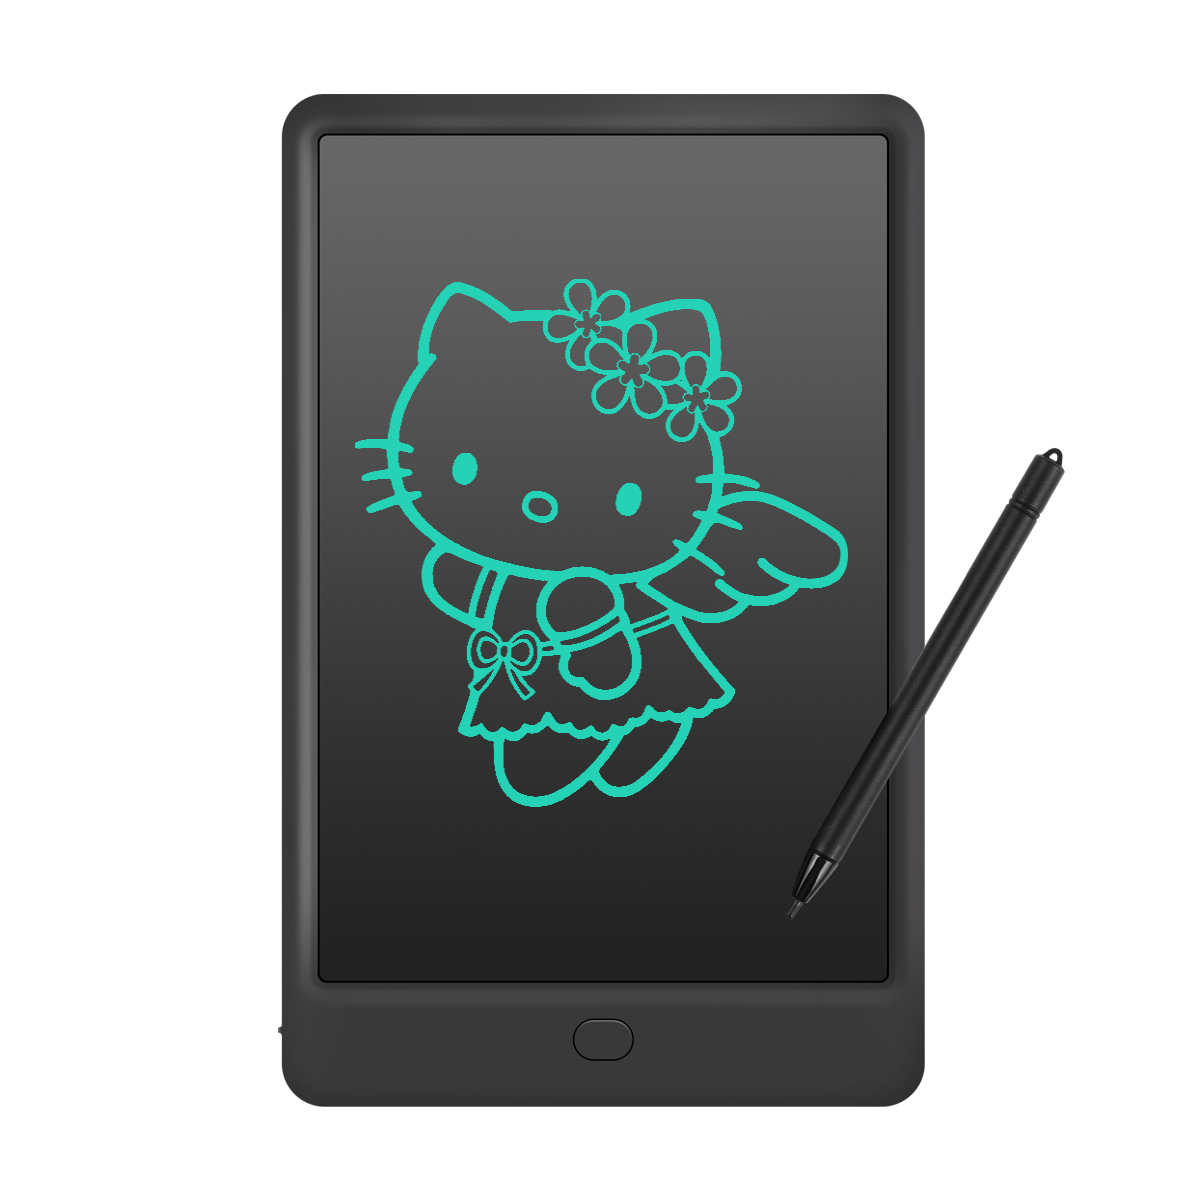 Finger Writing 10 Inch LCD Board//Electronic Small Blackboard One Button Erase Blue // Suitable for Childrens Drawing Graffiti Memo Gift